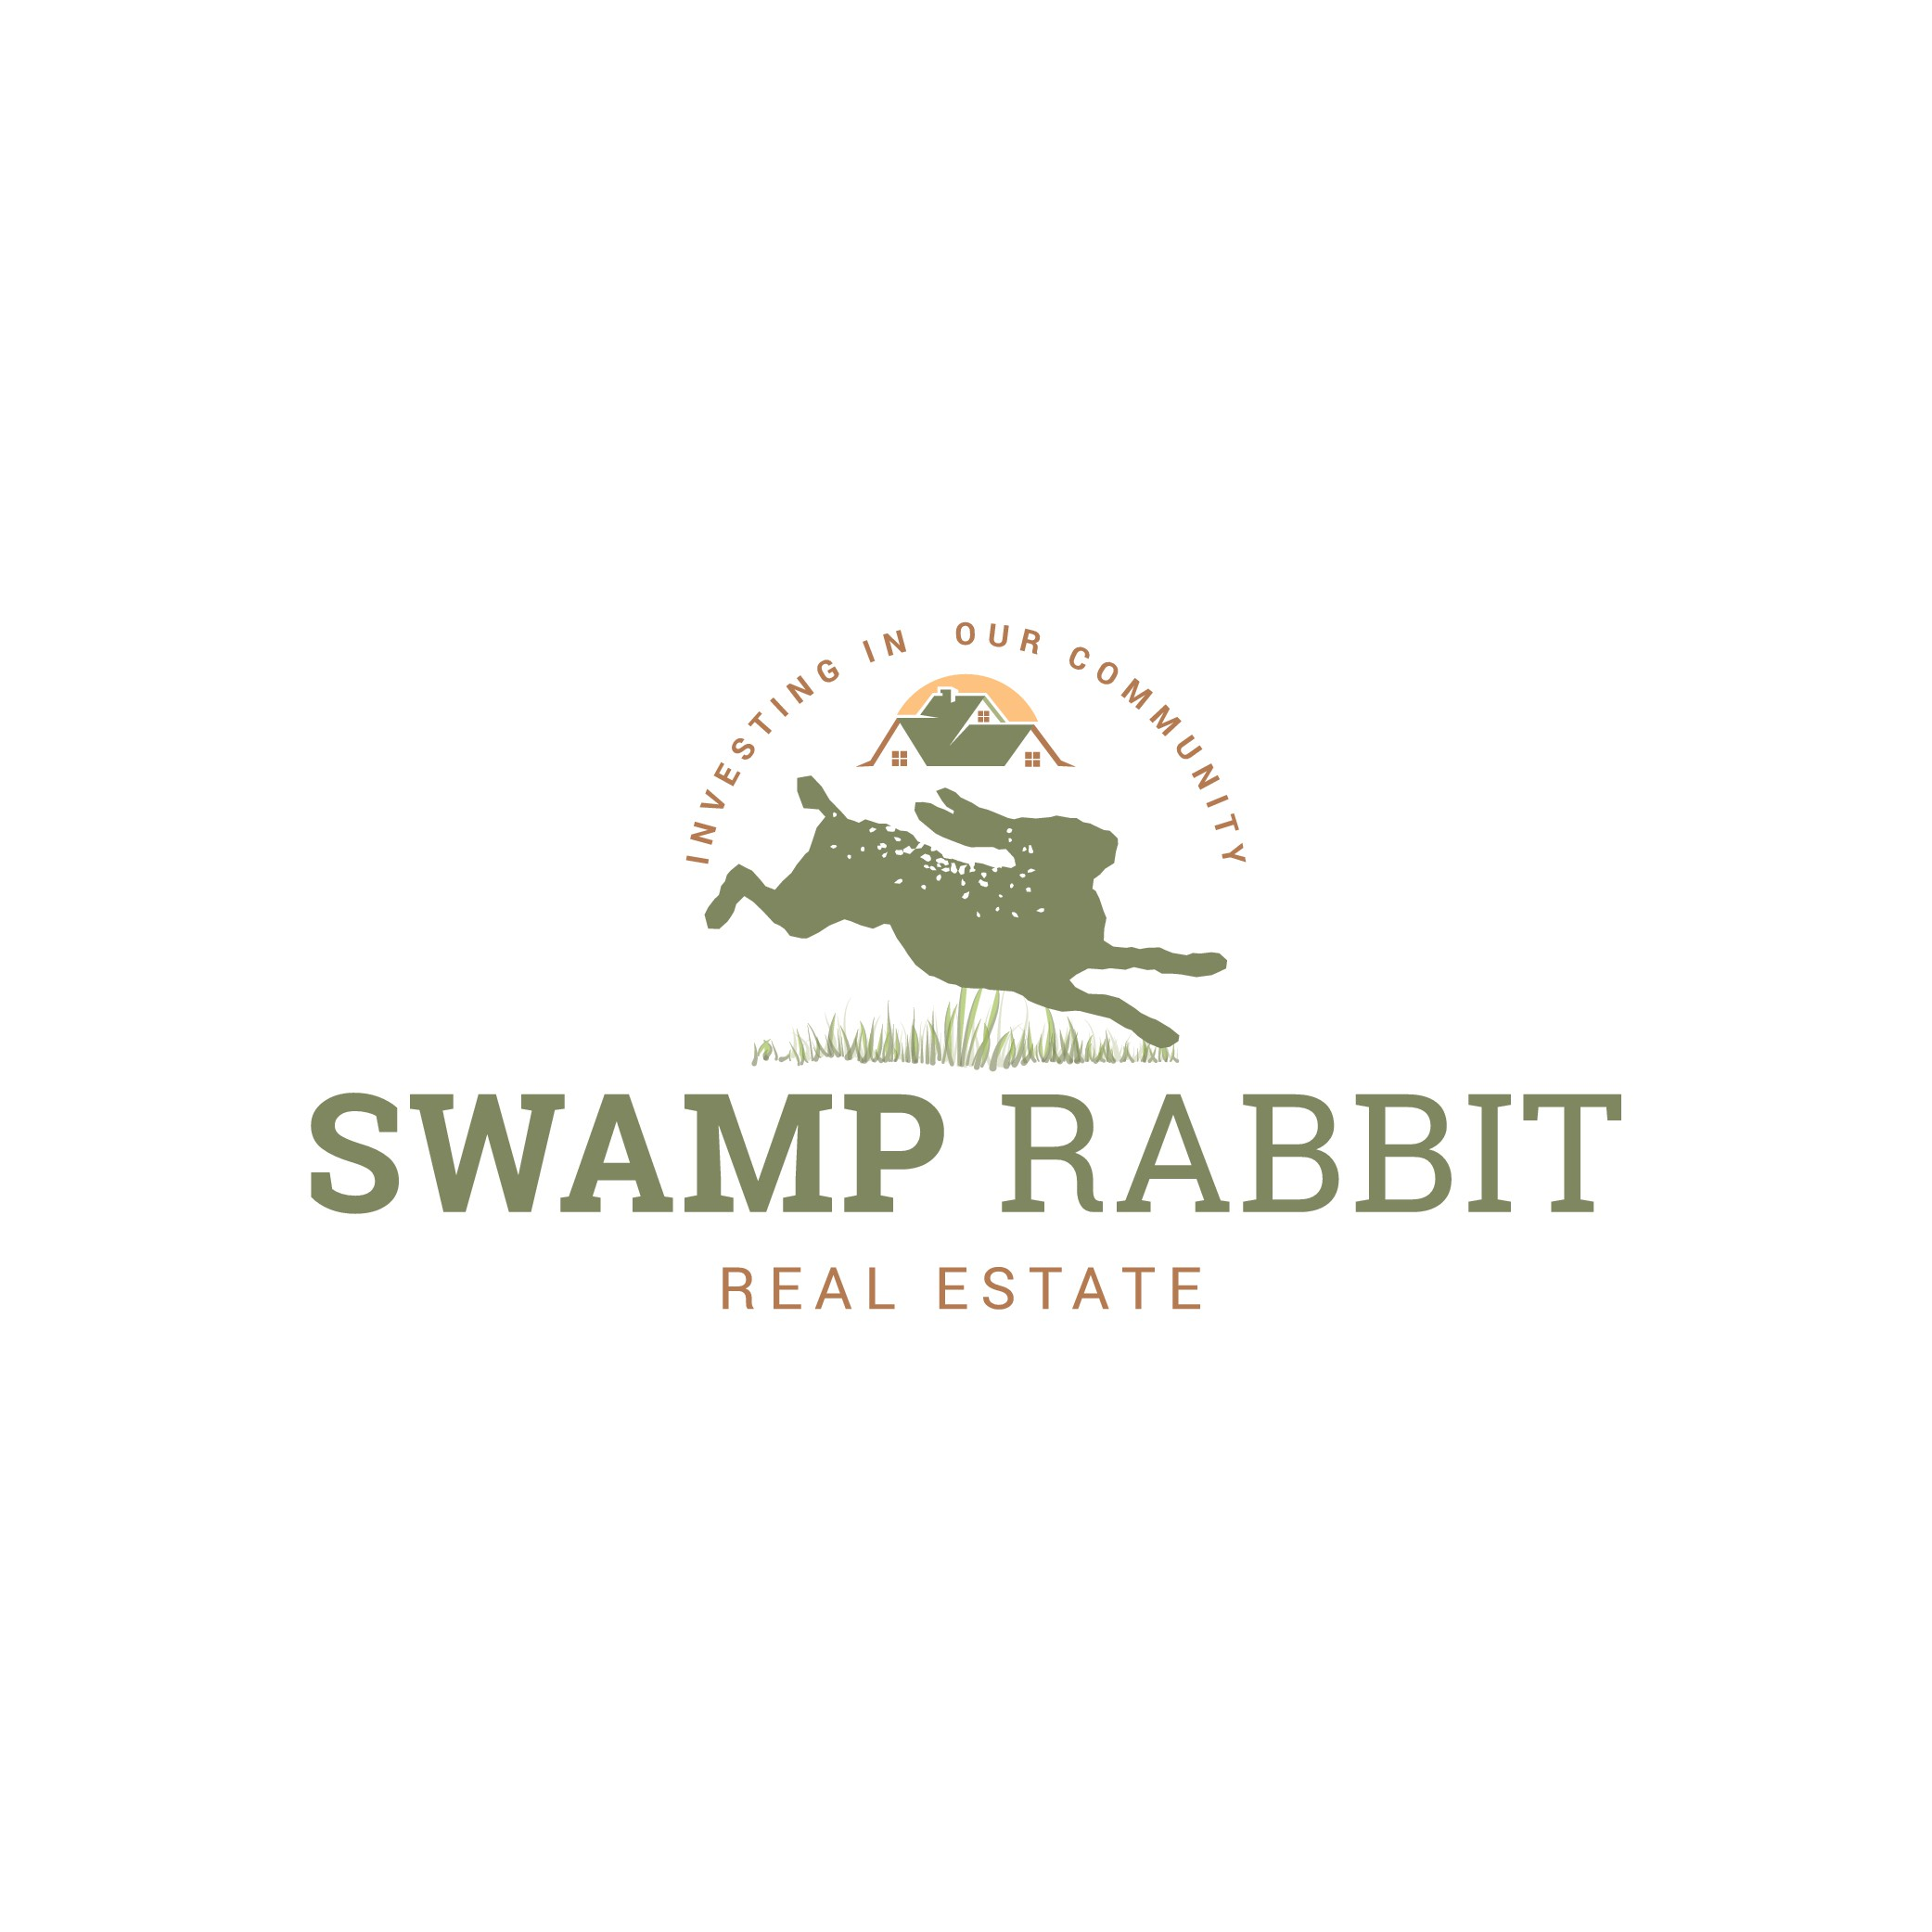 Create a Simple and Elegant Logo for Swamp Rabbit Real Estate!